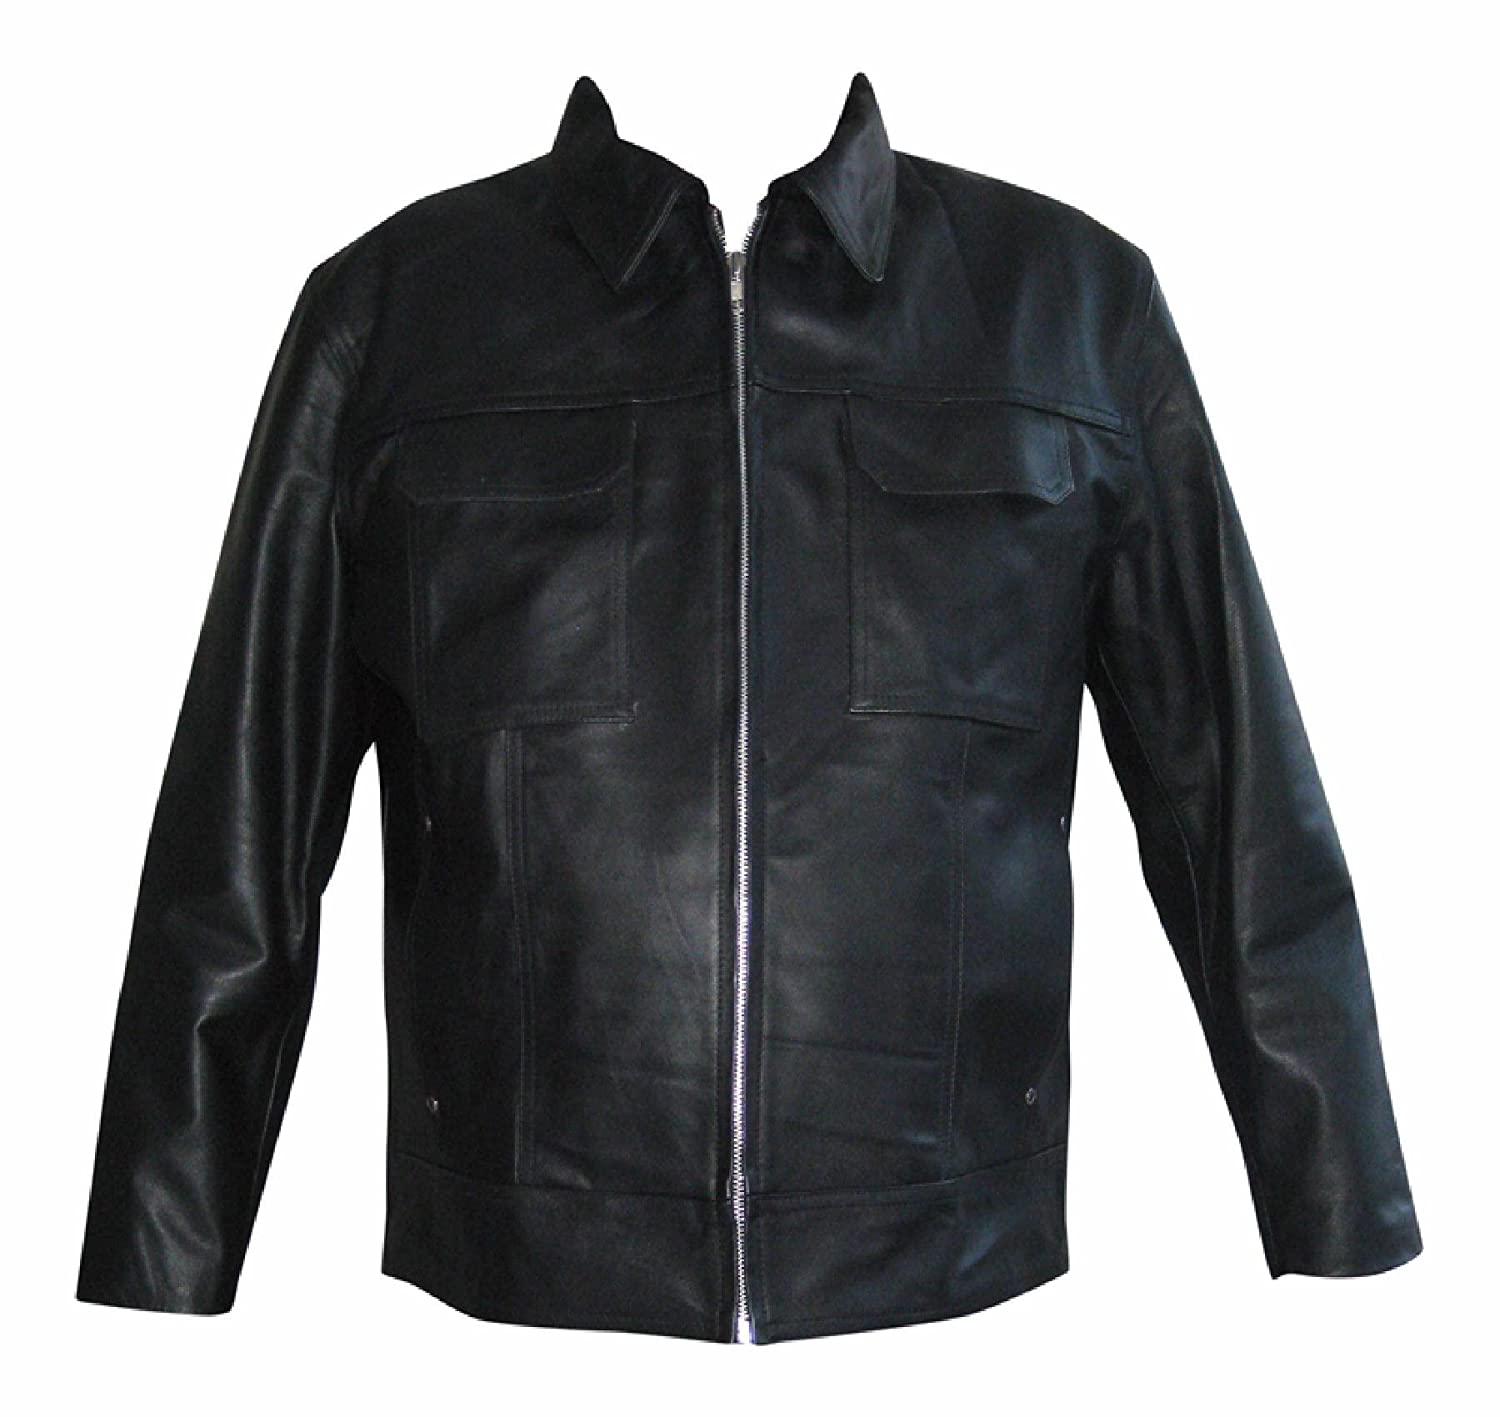 Men's Real Hide Leather Jacket S - 10X